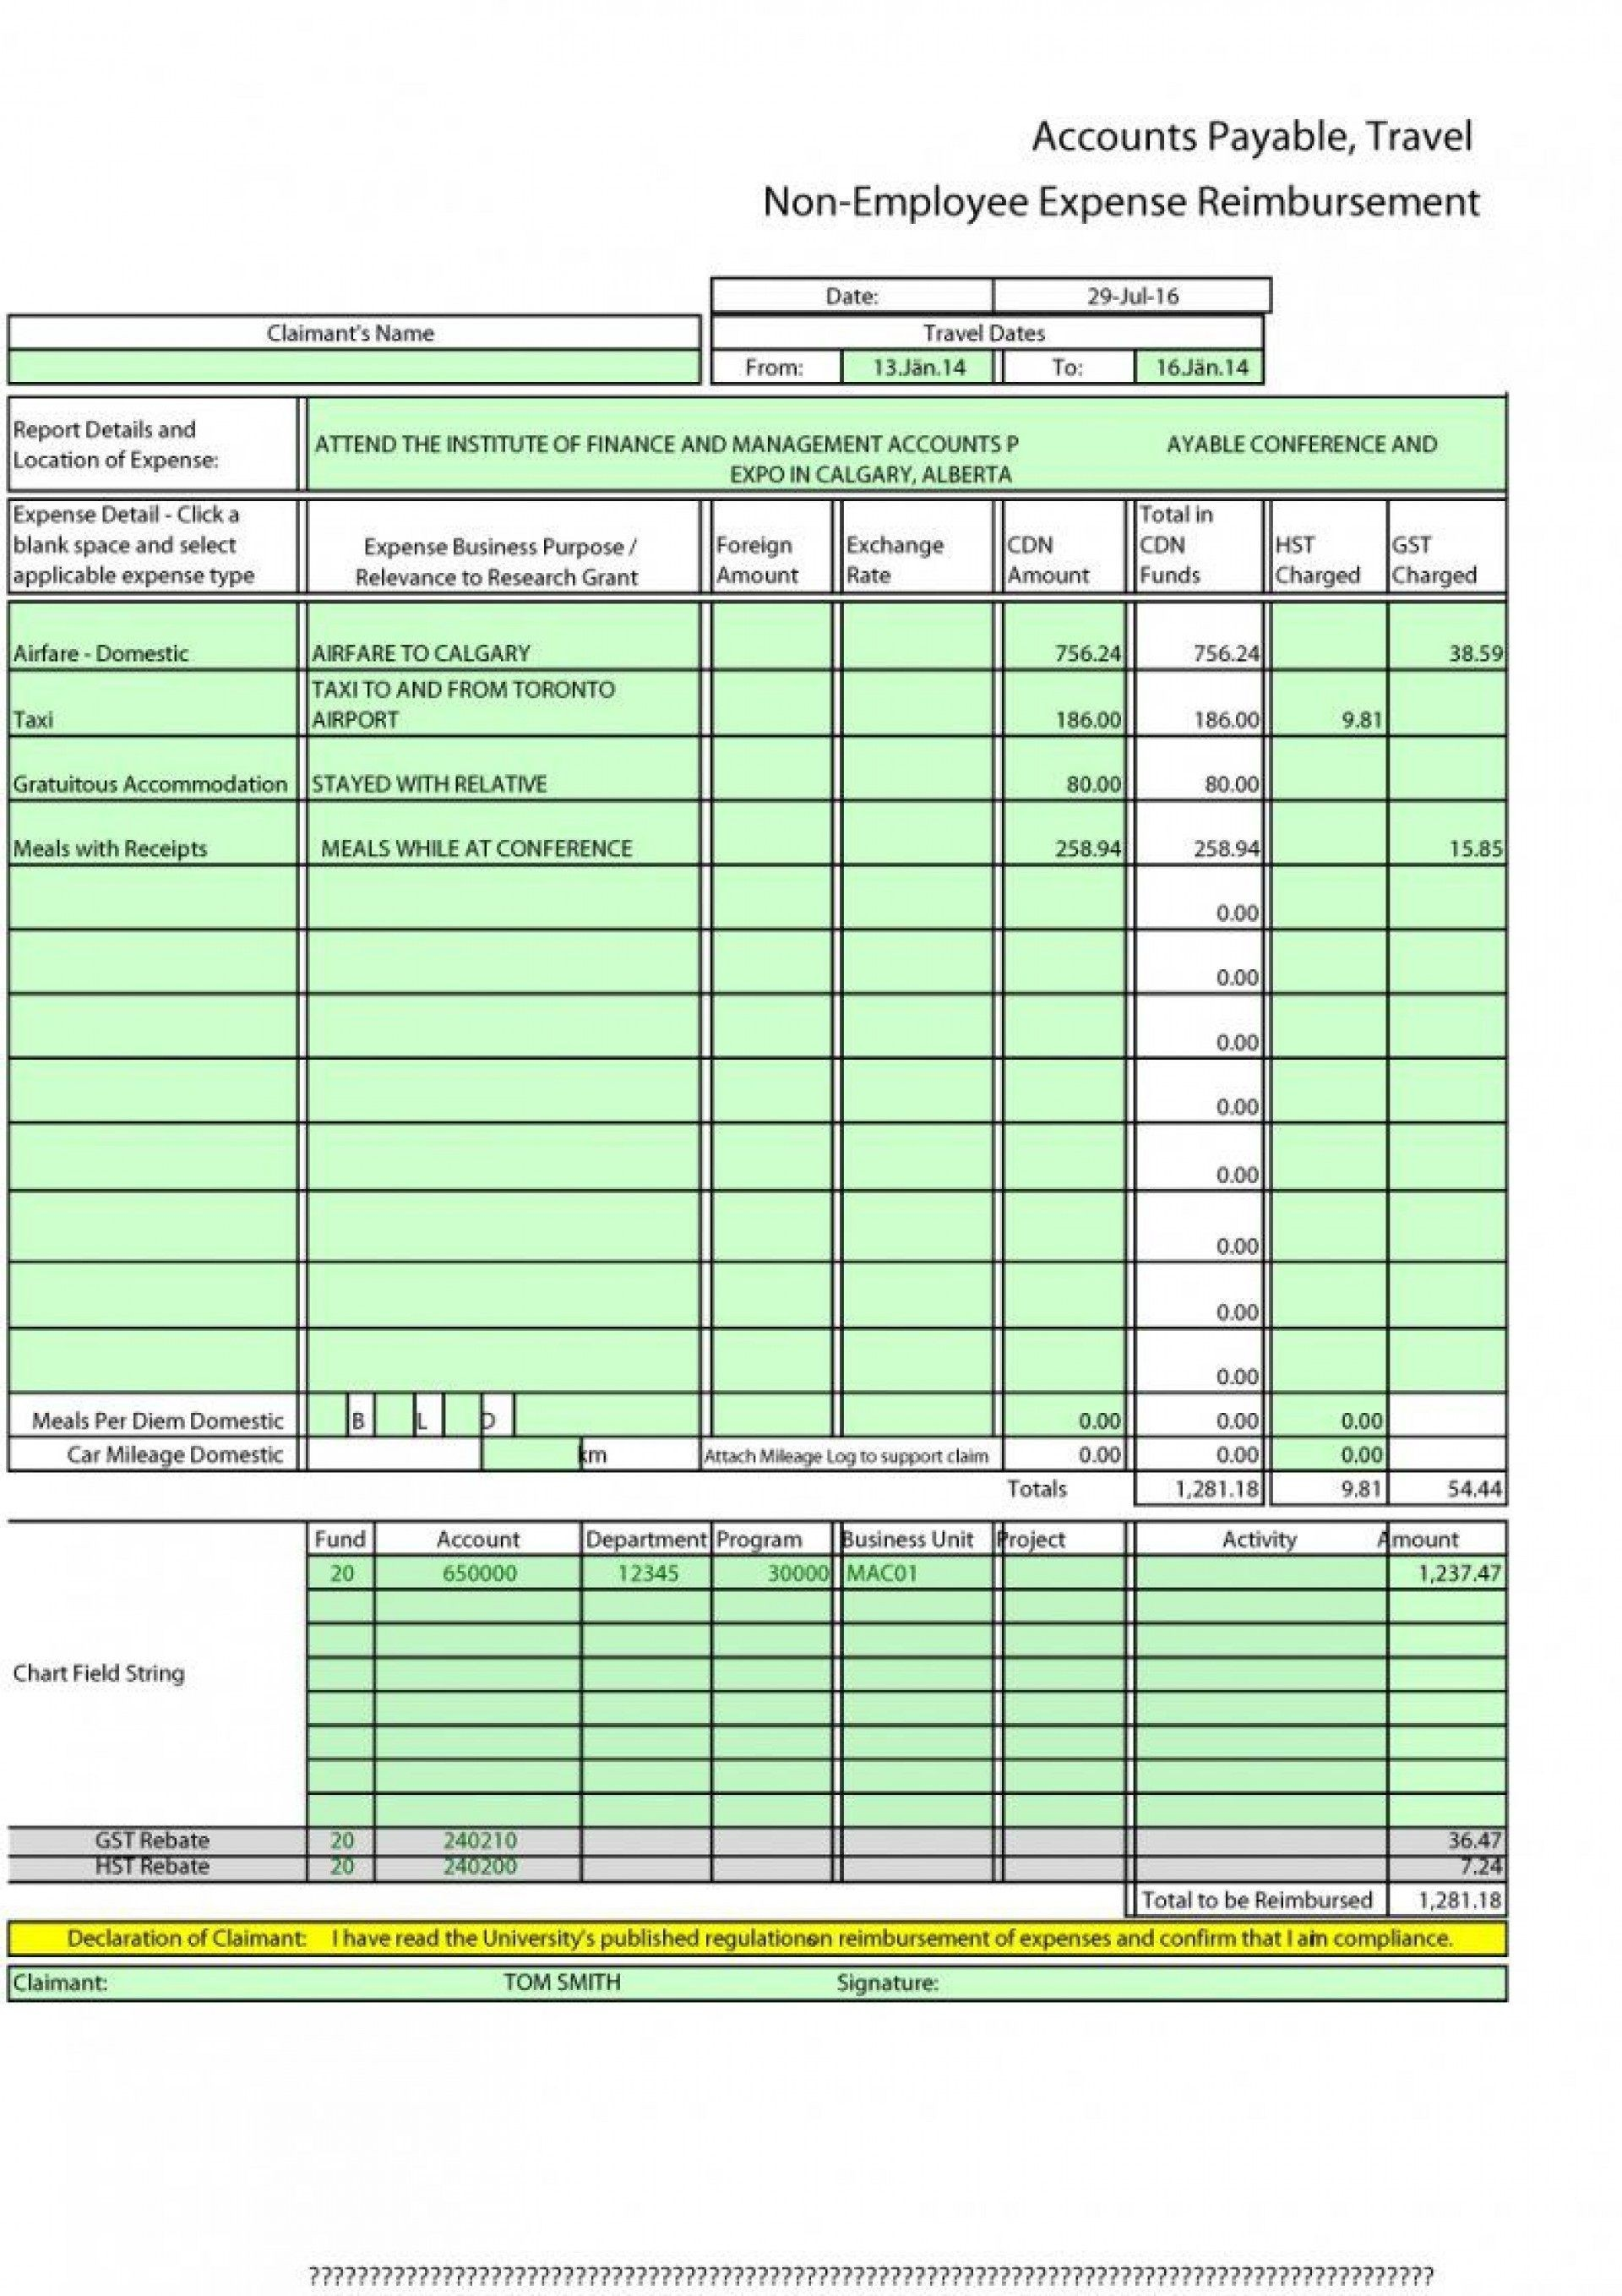 004 Impressive Free Expense Report Form Highest Clarity  Travel Pdf Blank Template Printable1920